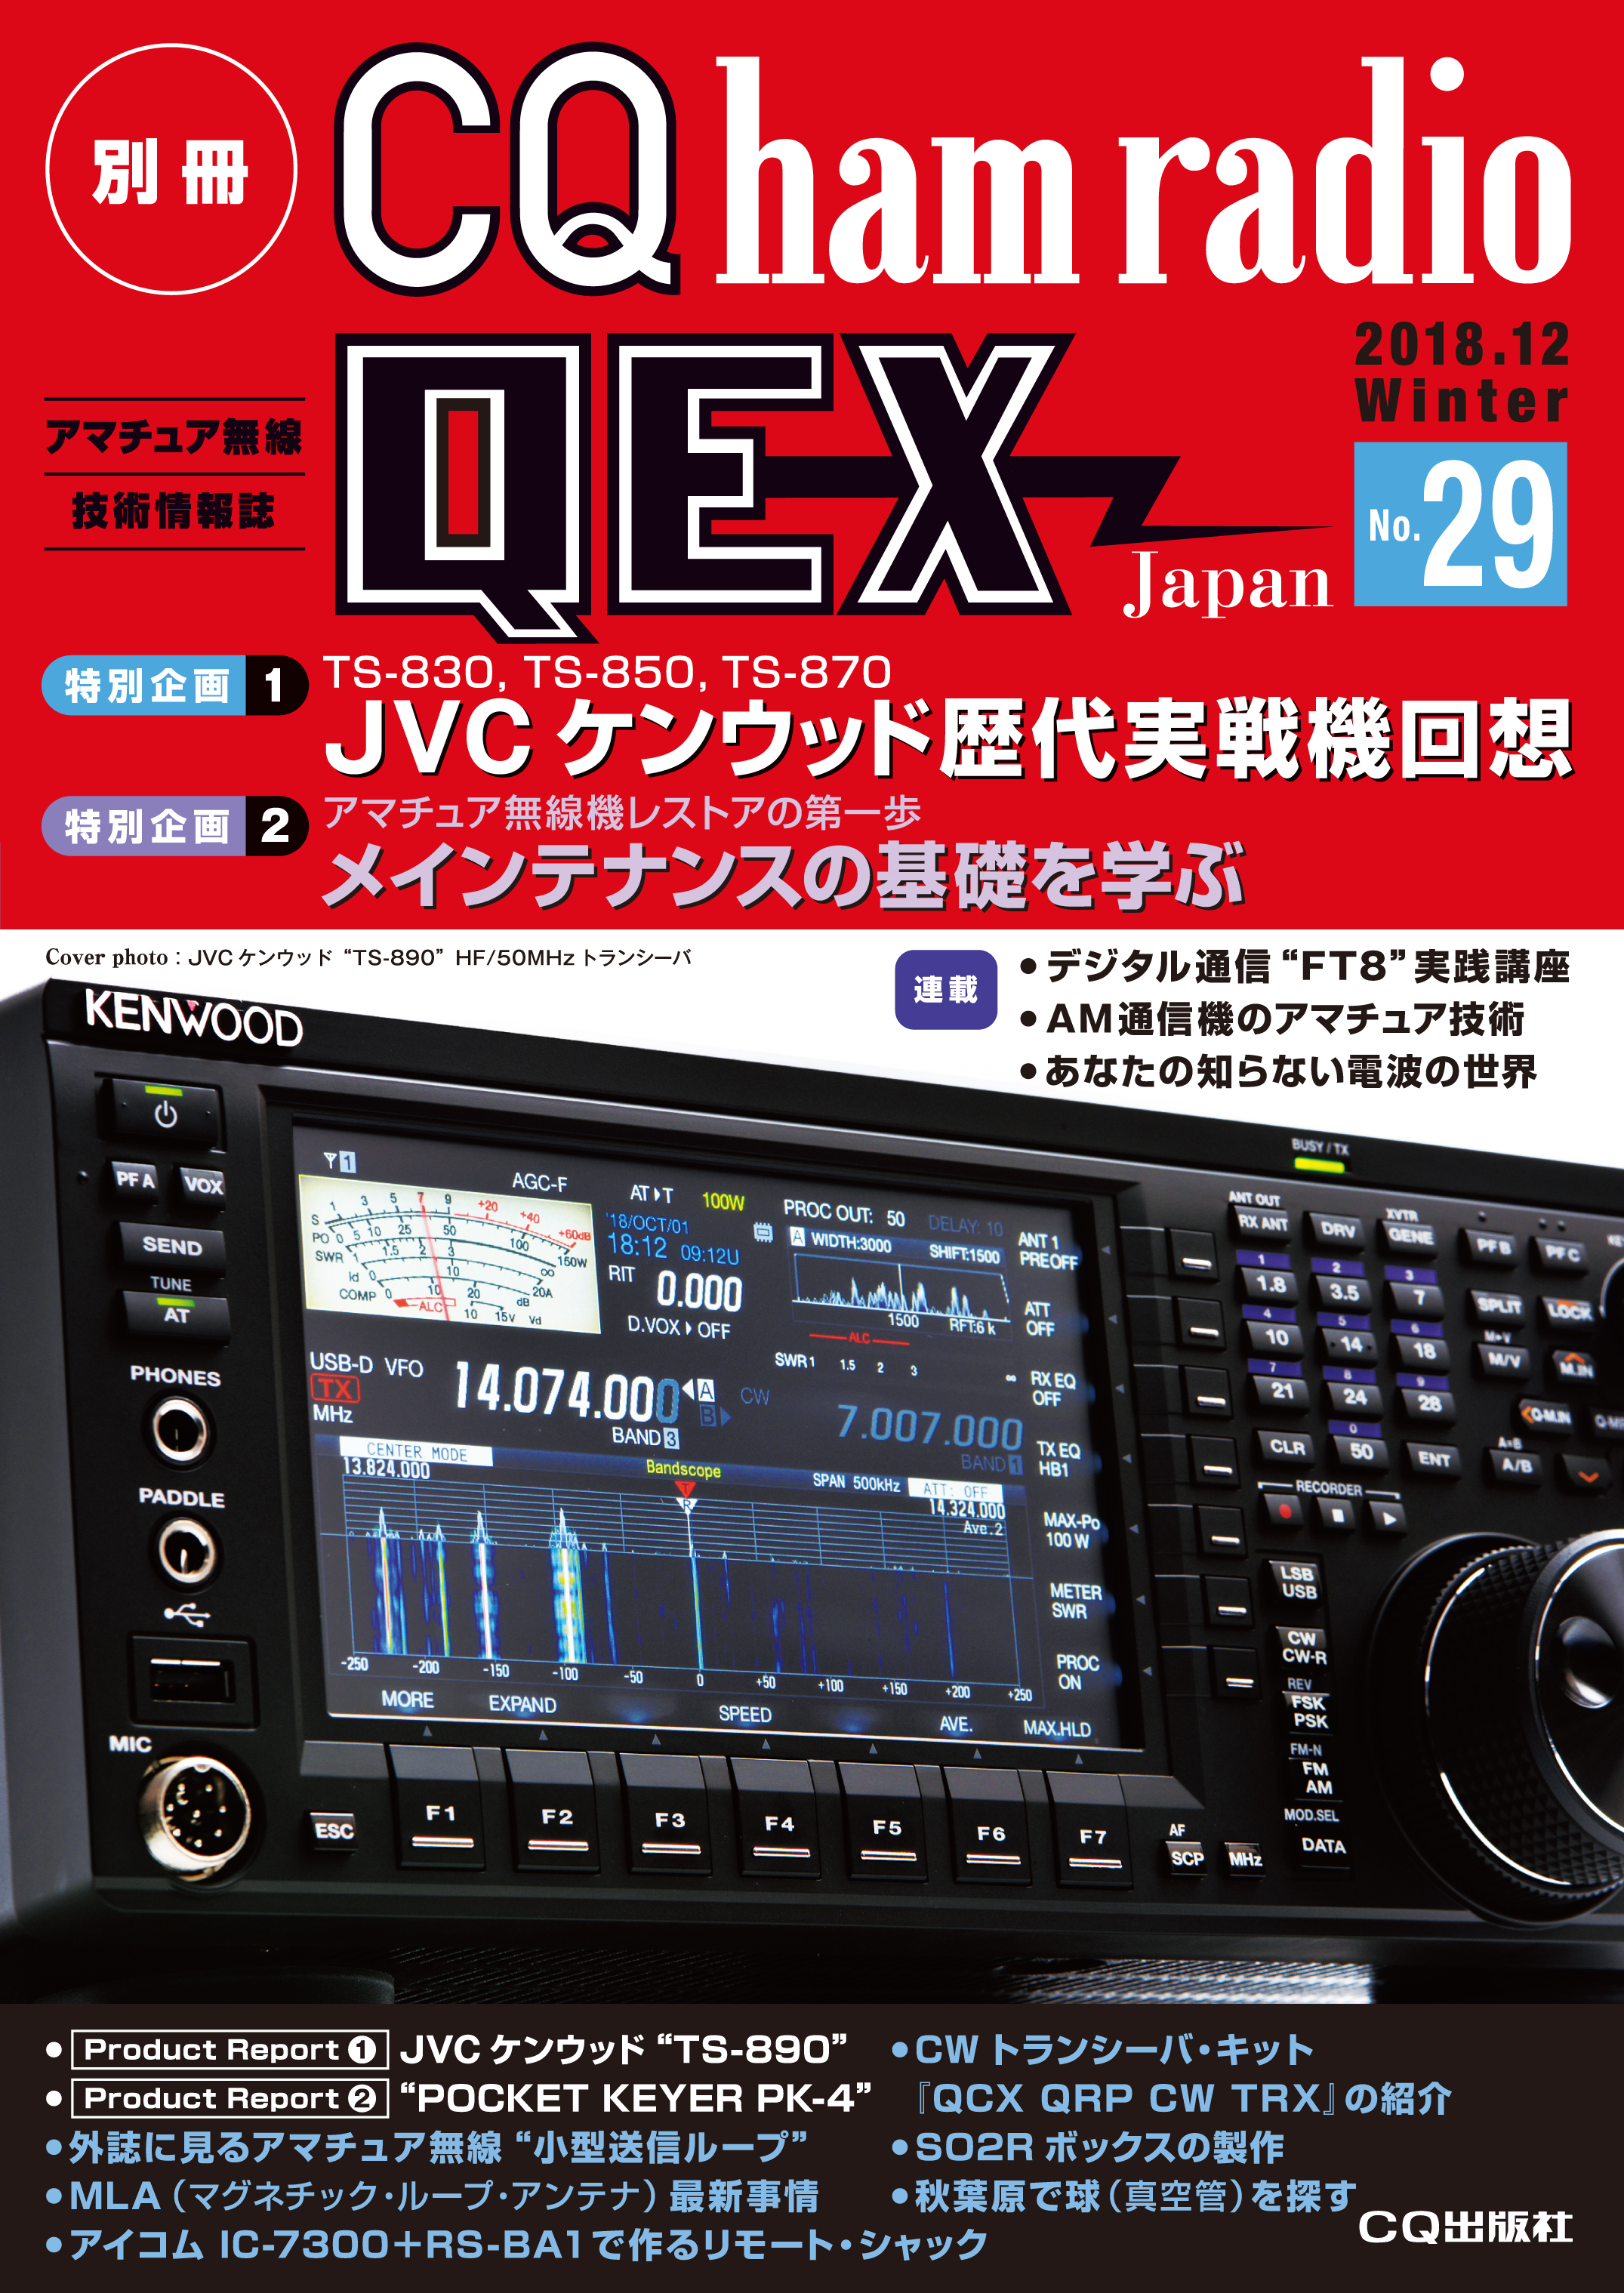 別冊CQ ham radio QEX Japan No.29